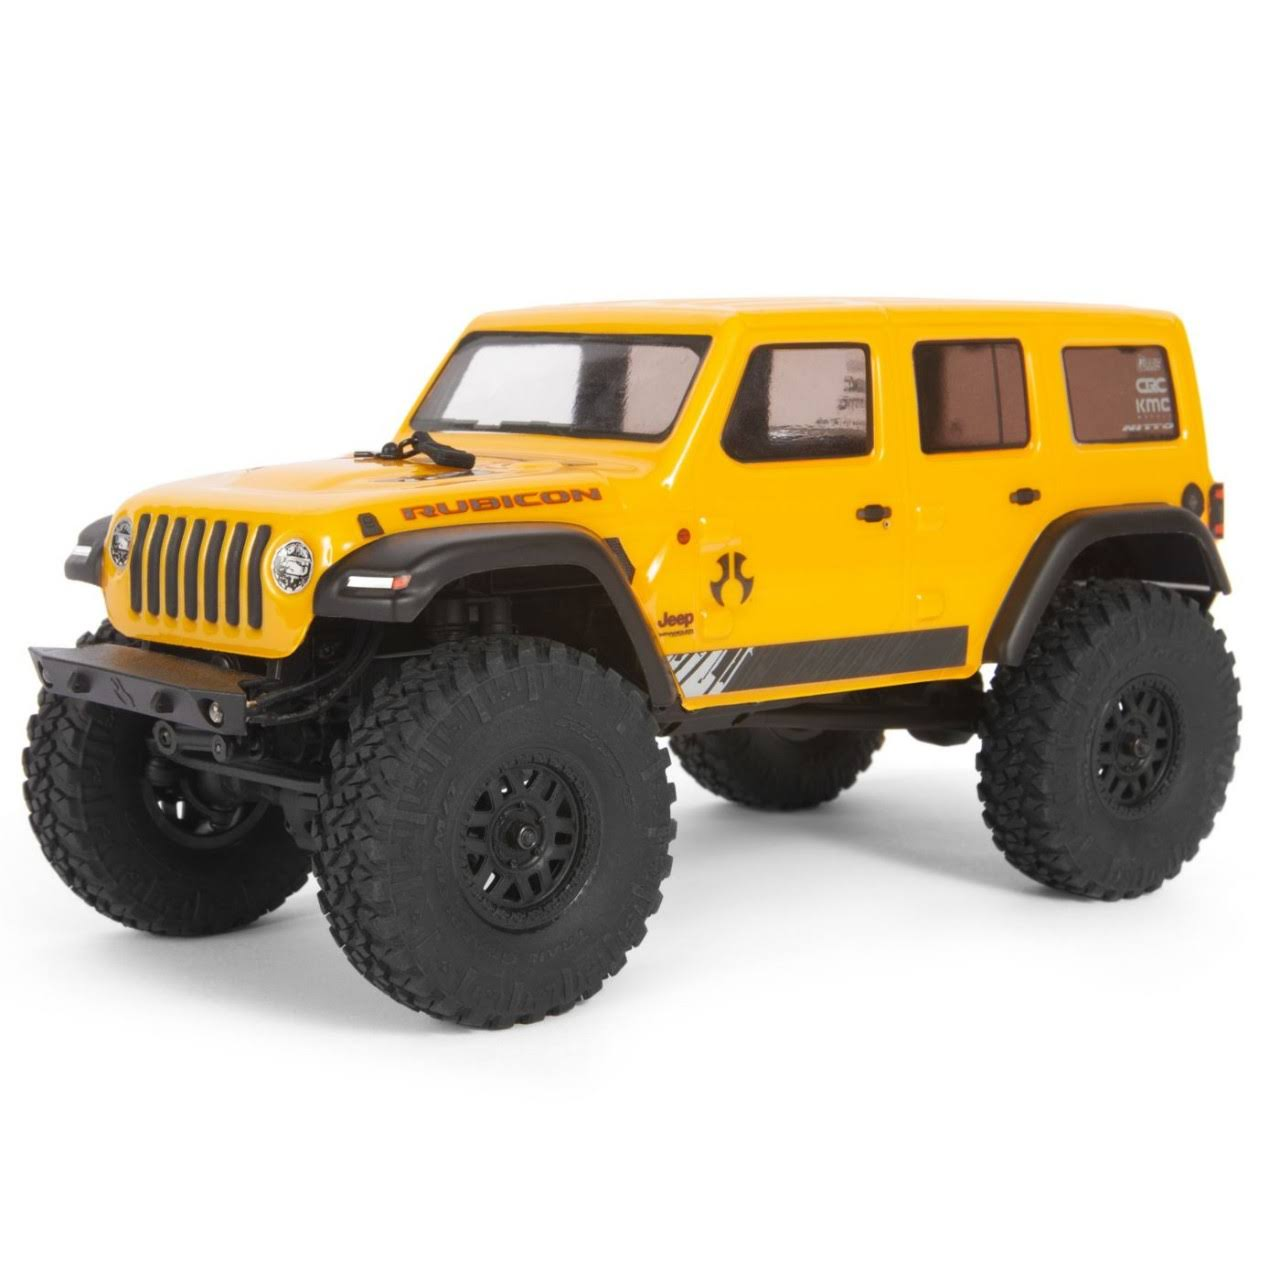 Axial Jeep Wrangler JLU CRC Rock Crawler 4wd Radio Control Toy - Yellow, 1/24 Scale